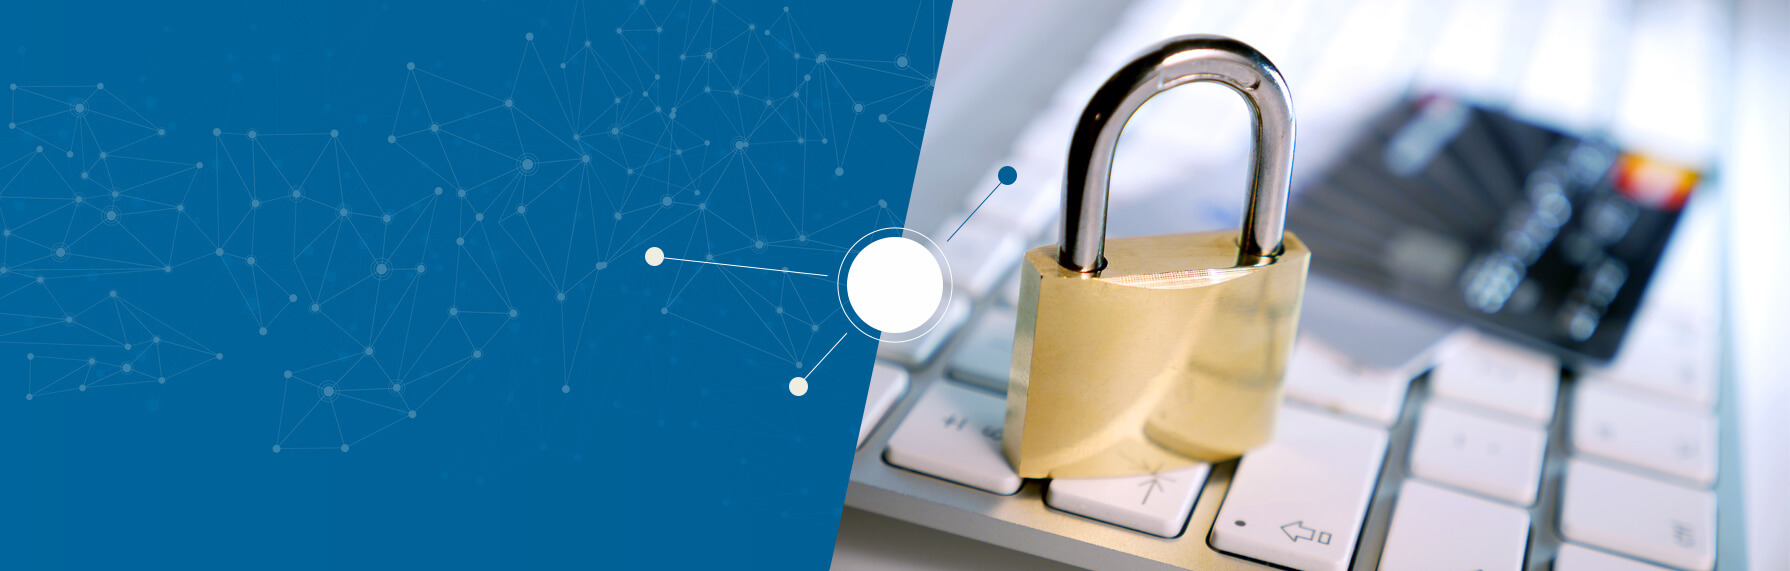 Is your business network secure?